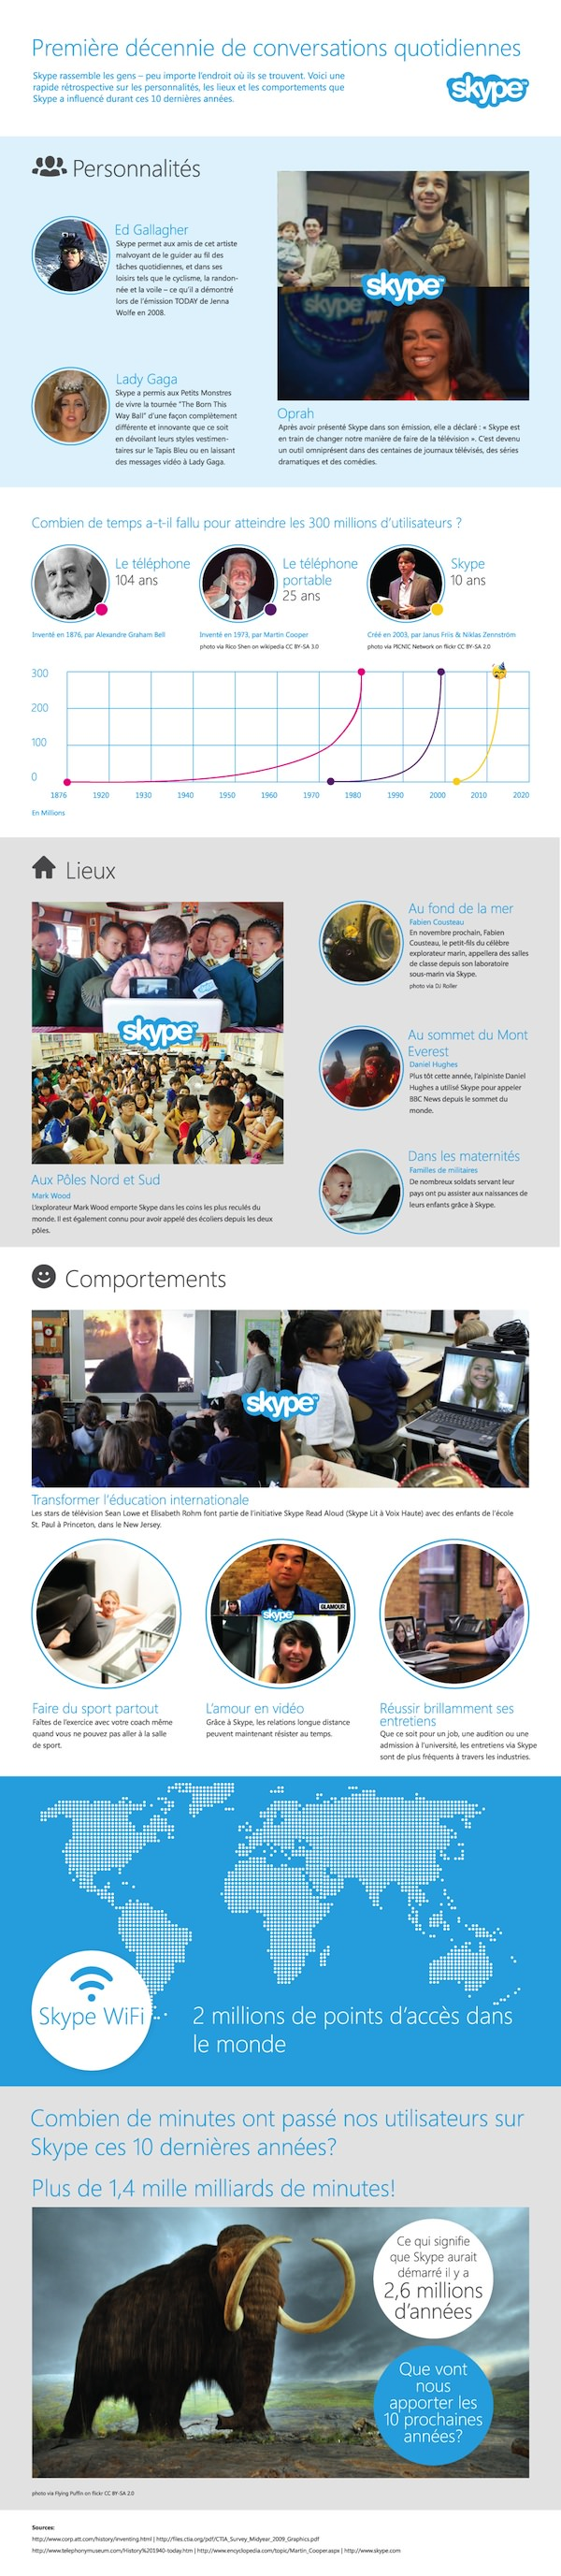 Skype 10 Ans Infographie